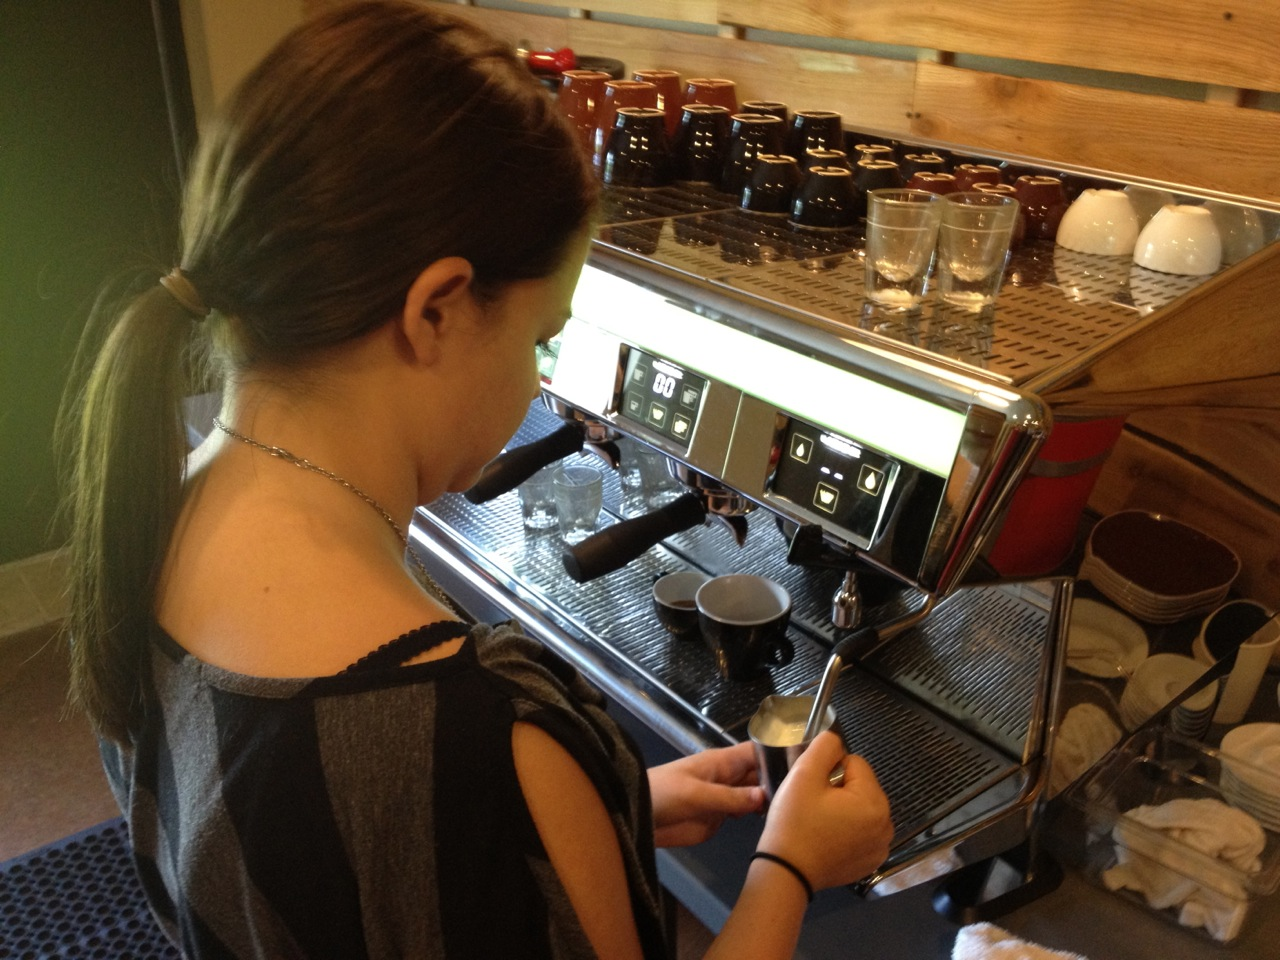 Photo: 2-Day Barista Training Class at Texas Coffee School